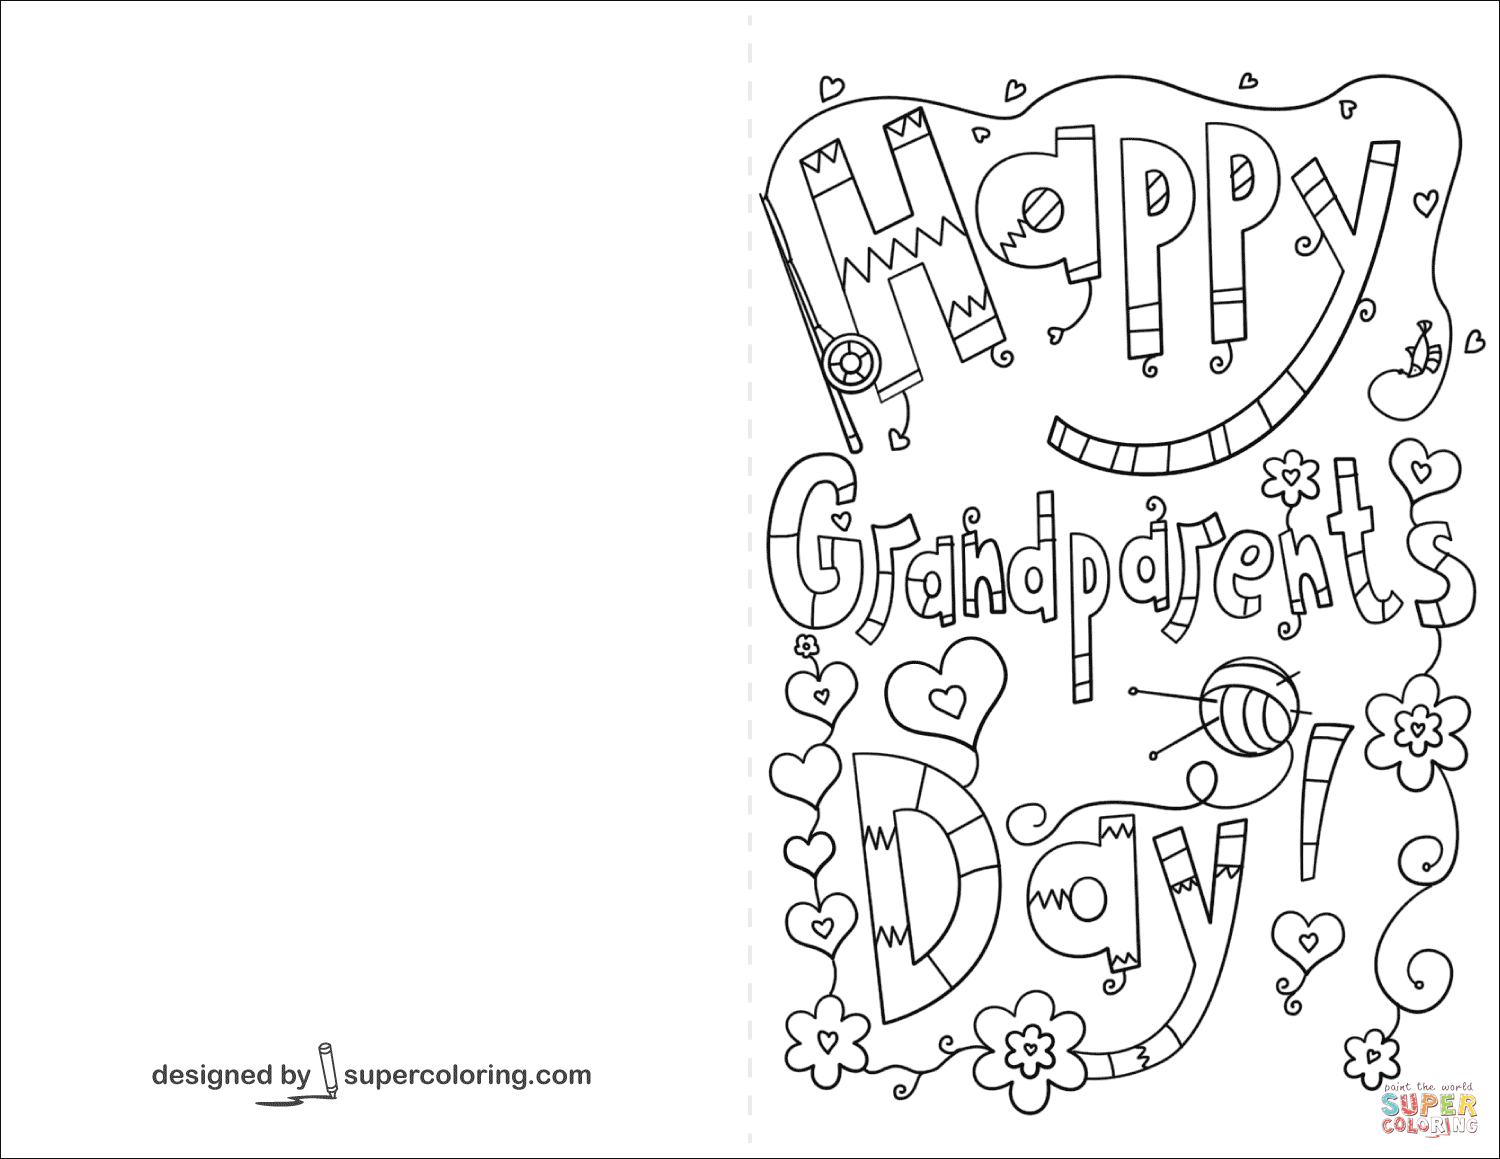 1500x1159 Grandparents Day Coloring Pages Free Coloring Pages Grandparents